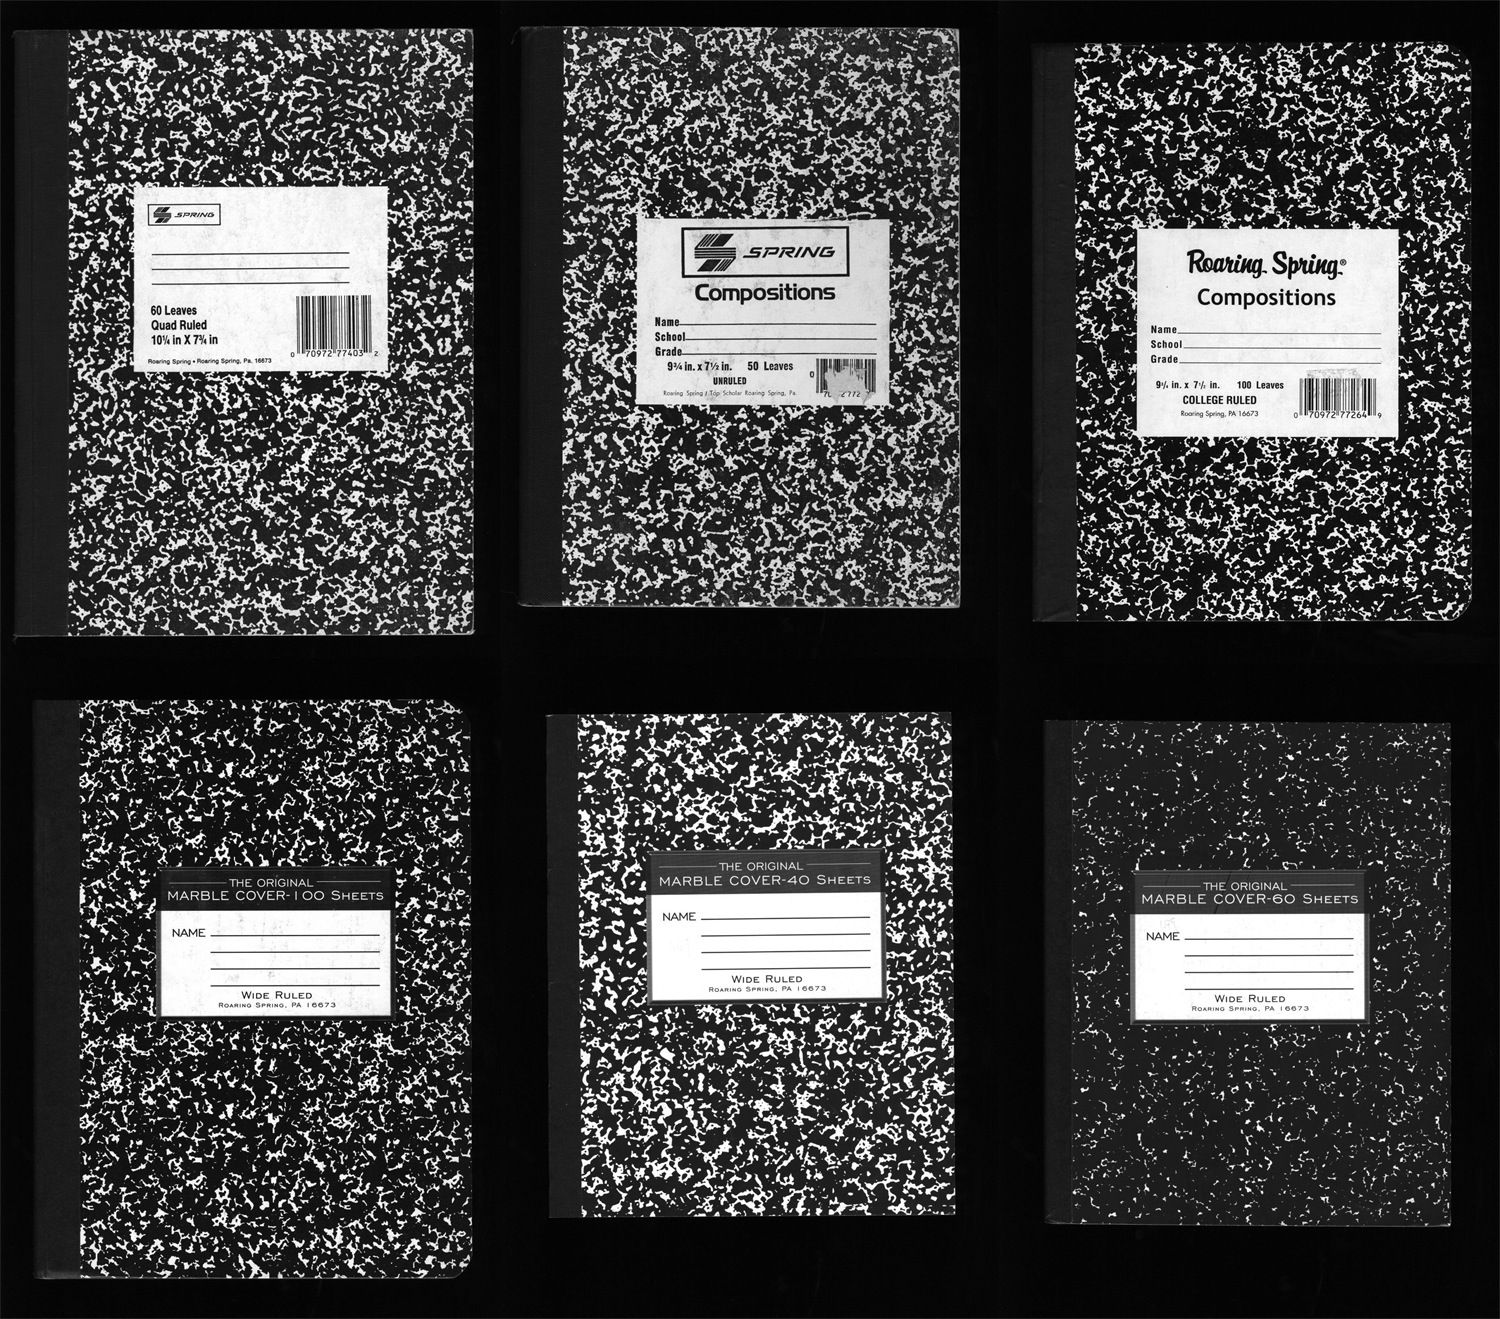 Vernacular Typography Composition Books Composition Book Composition Typography